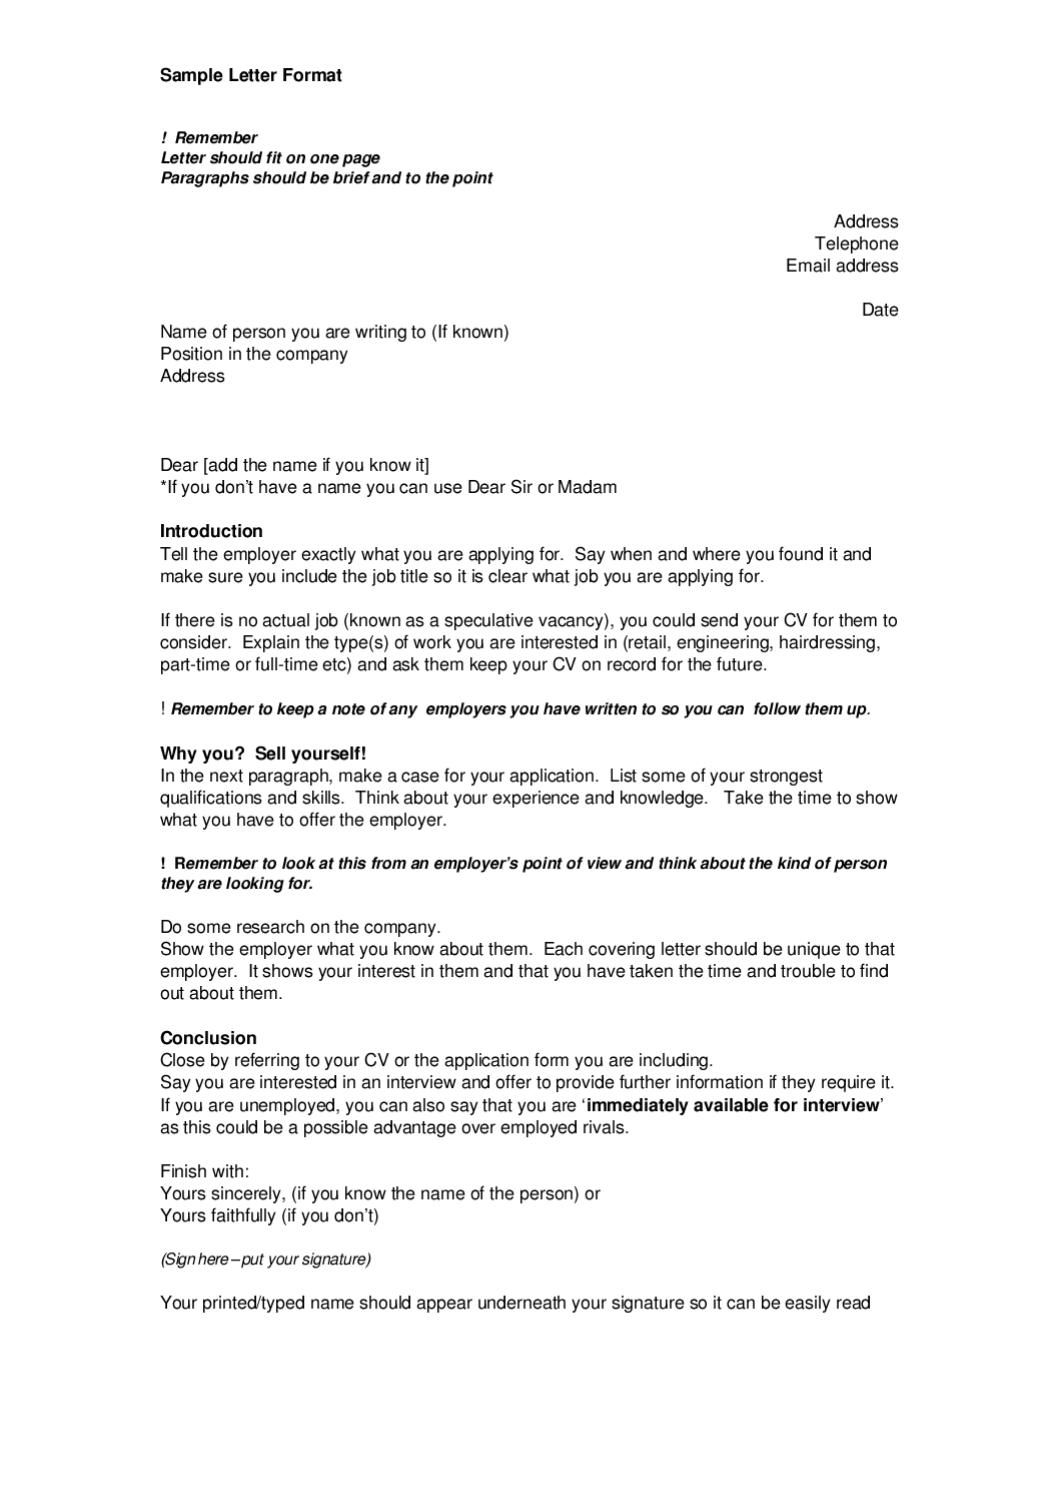 Covering letter example by Prospects Services Ltd  Issuu